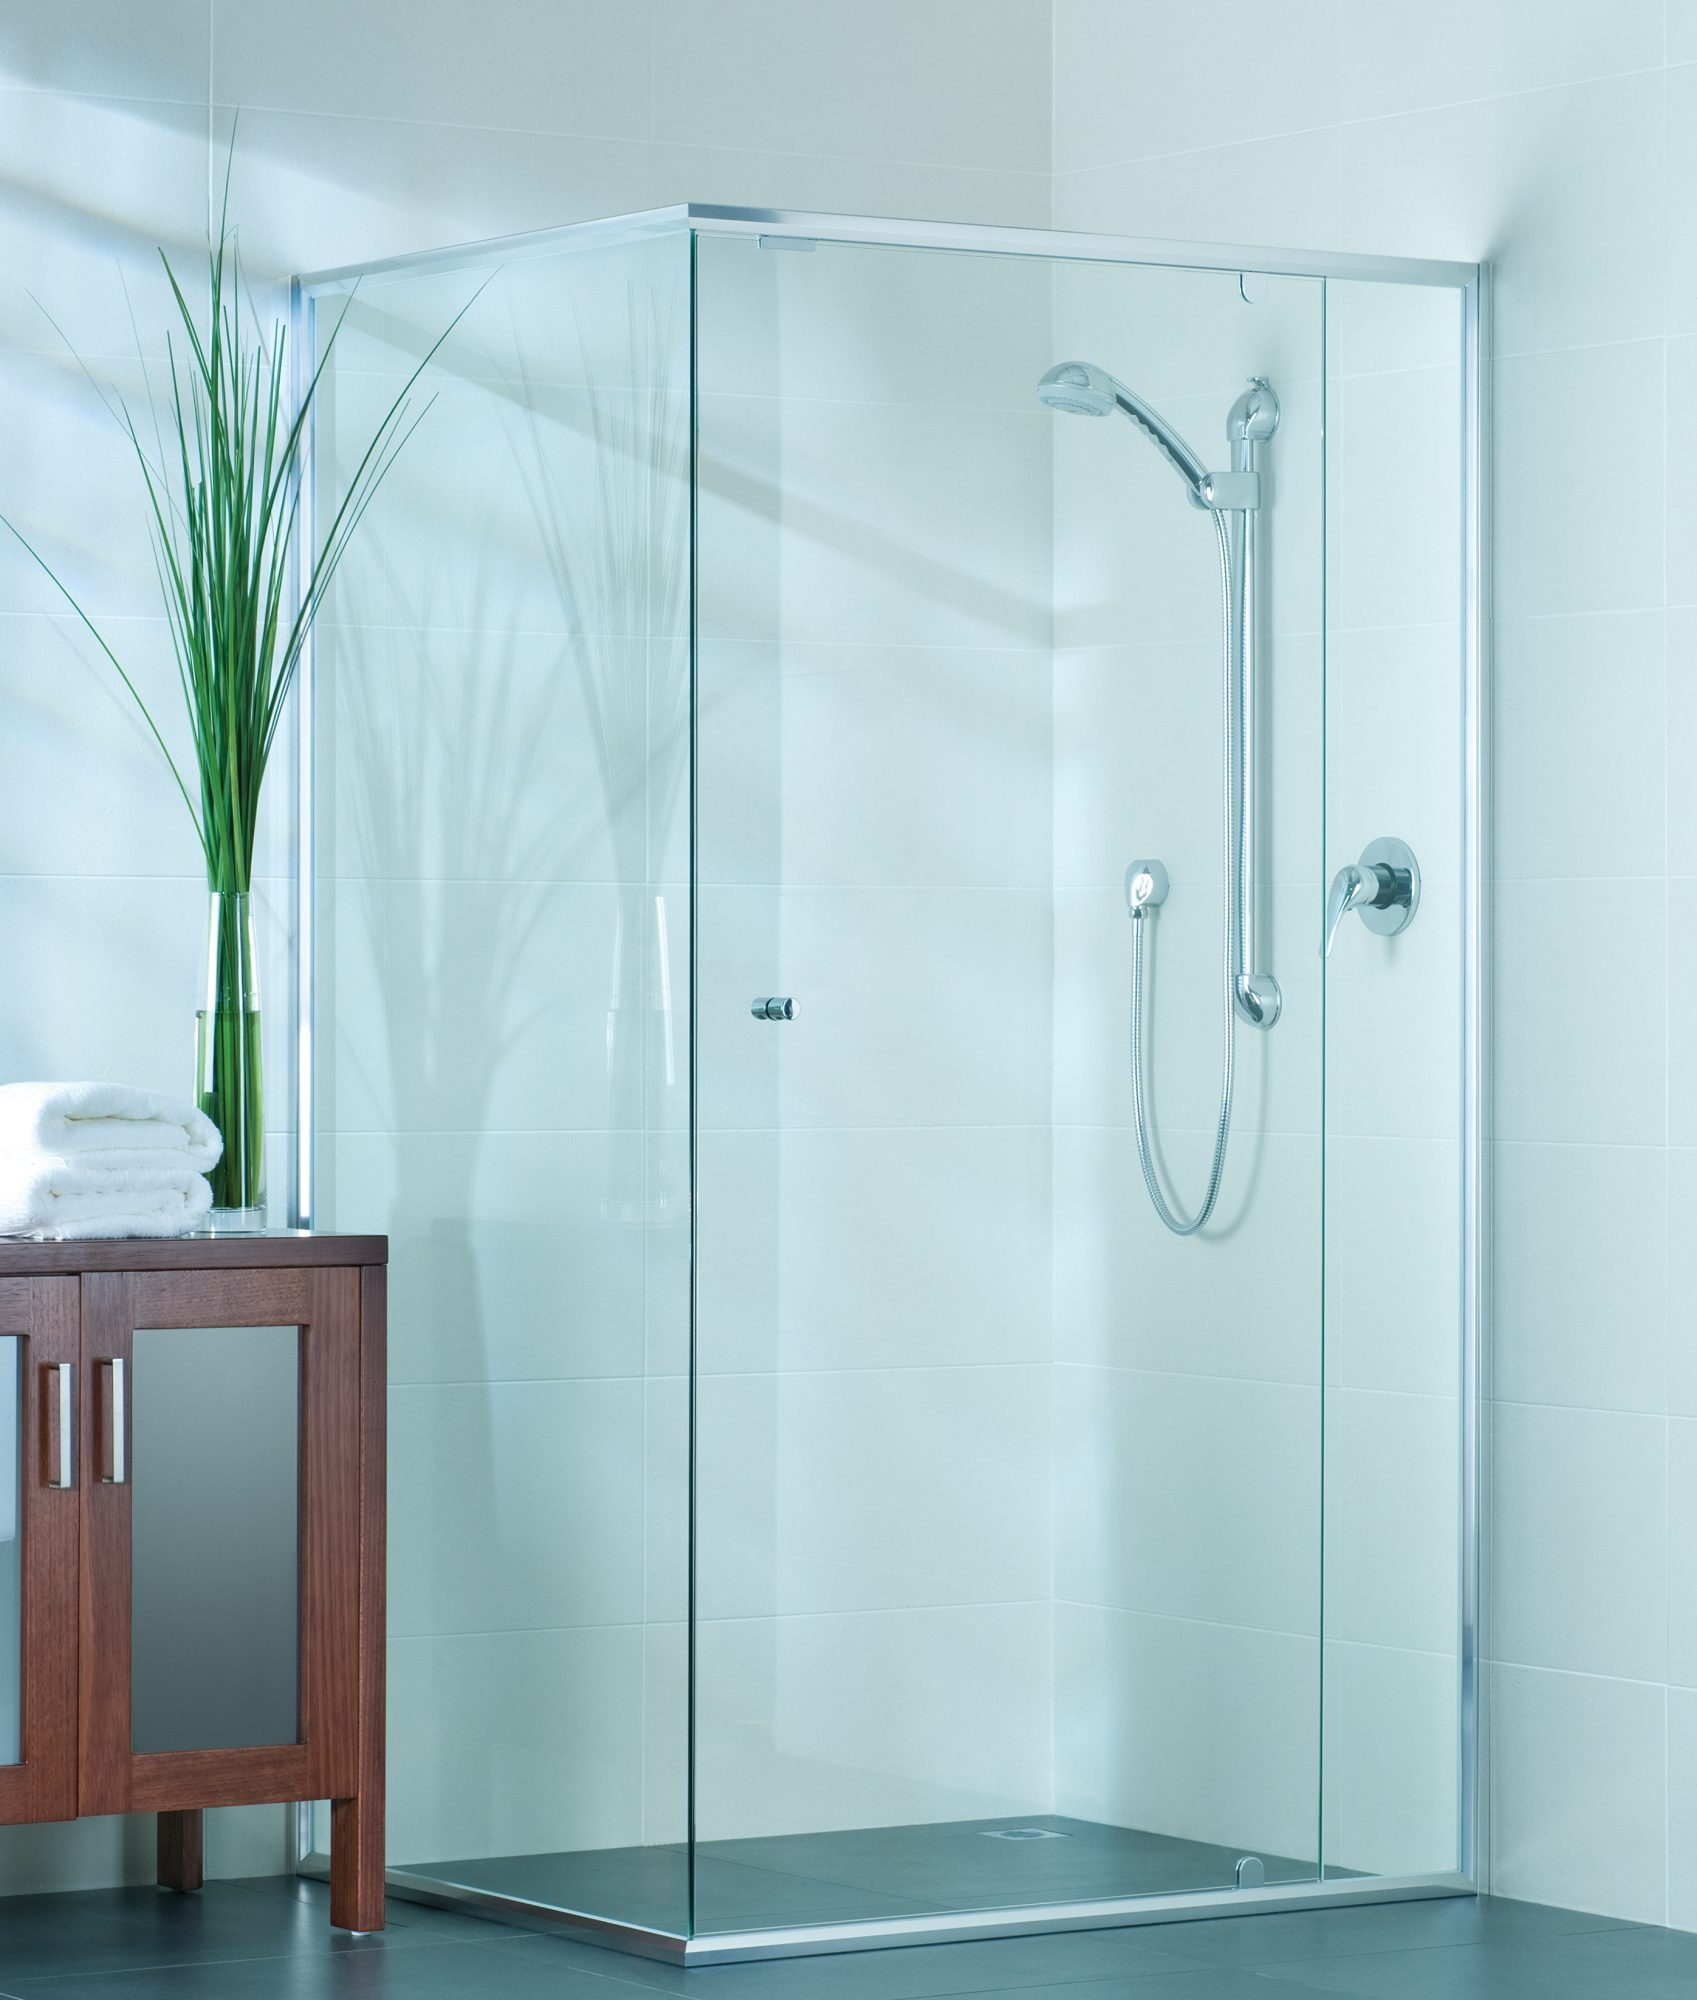 semi frameless single shower doors 2. to expand suit larger, family bathrooms, while keeping the door at a comfortable size. semi-frameless and glass panel feel spacious. semi frameless single shower doors 2